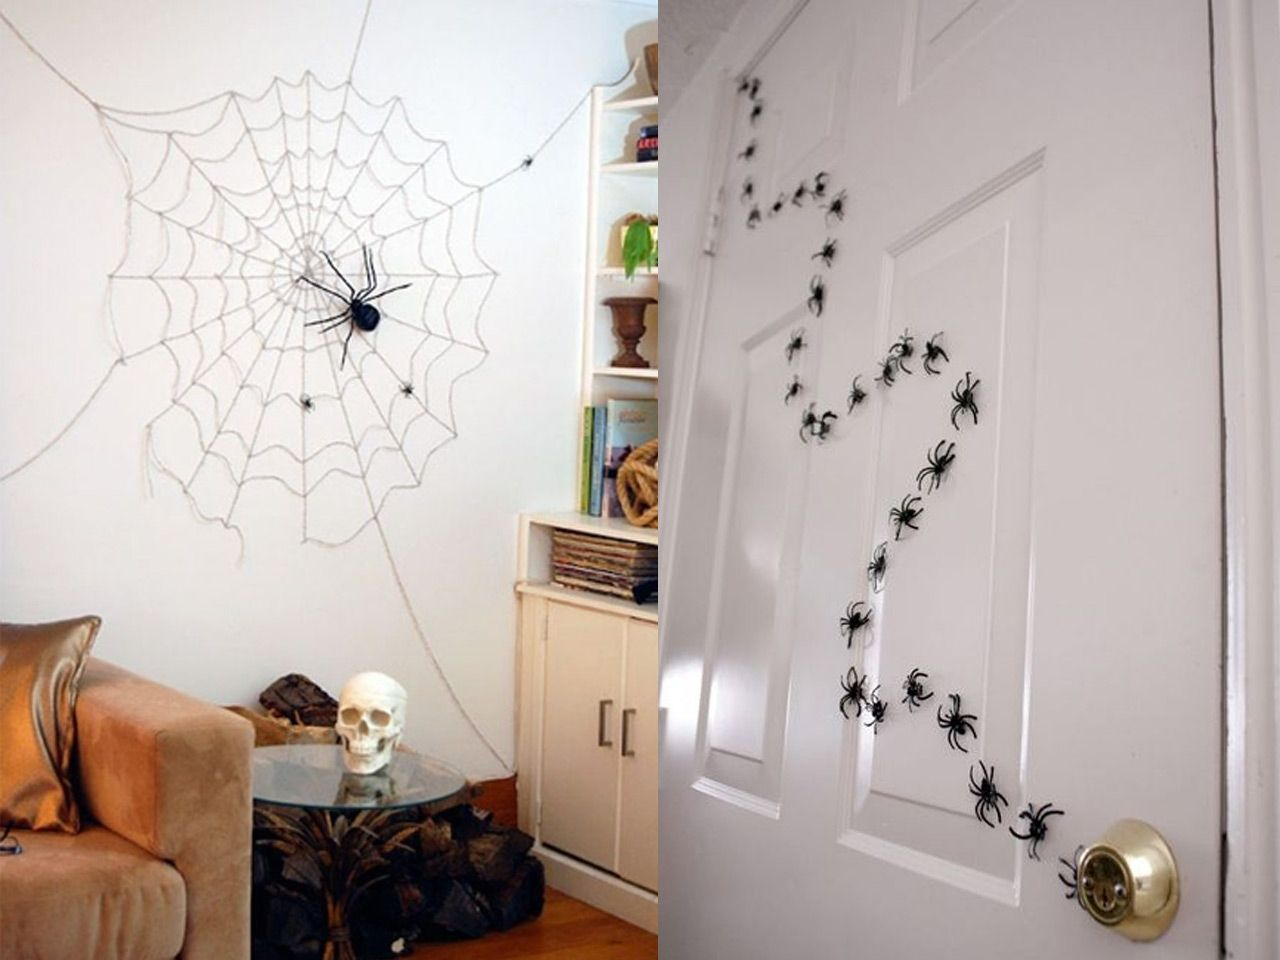 Ideas econmicas para decorar tu casa en Halloween Imaginas